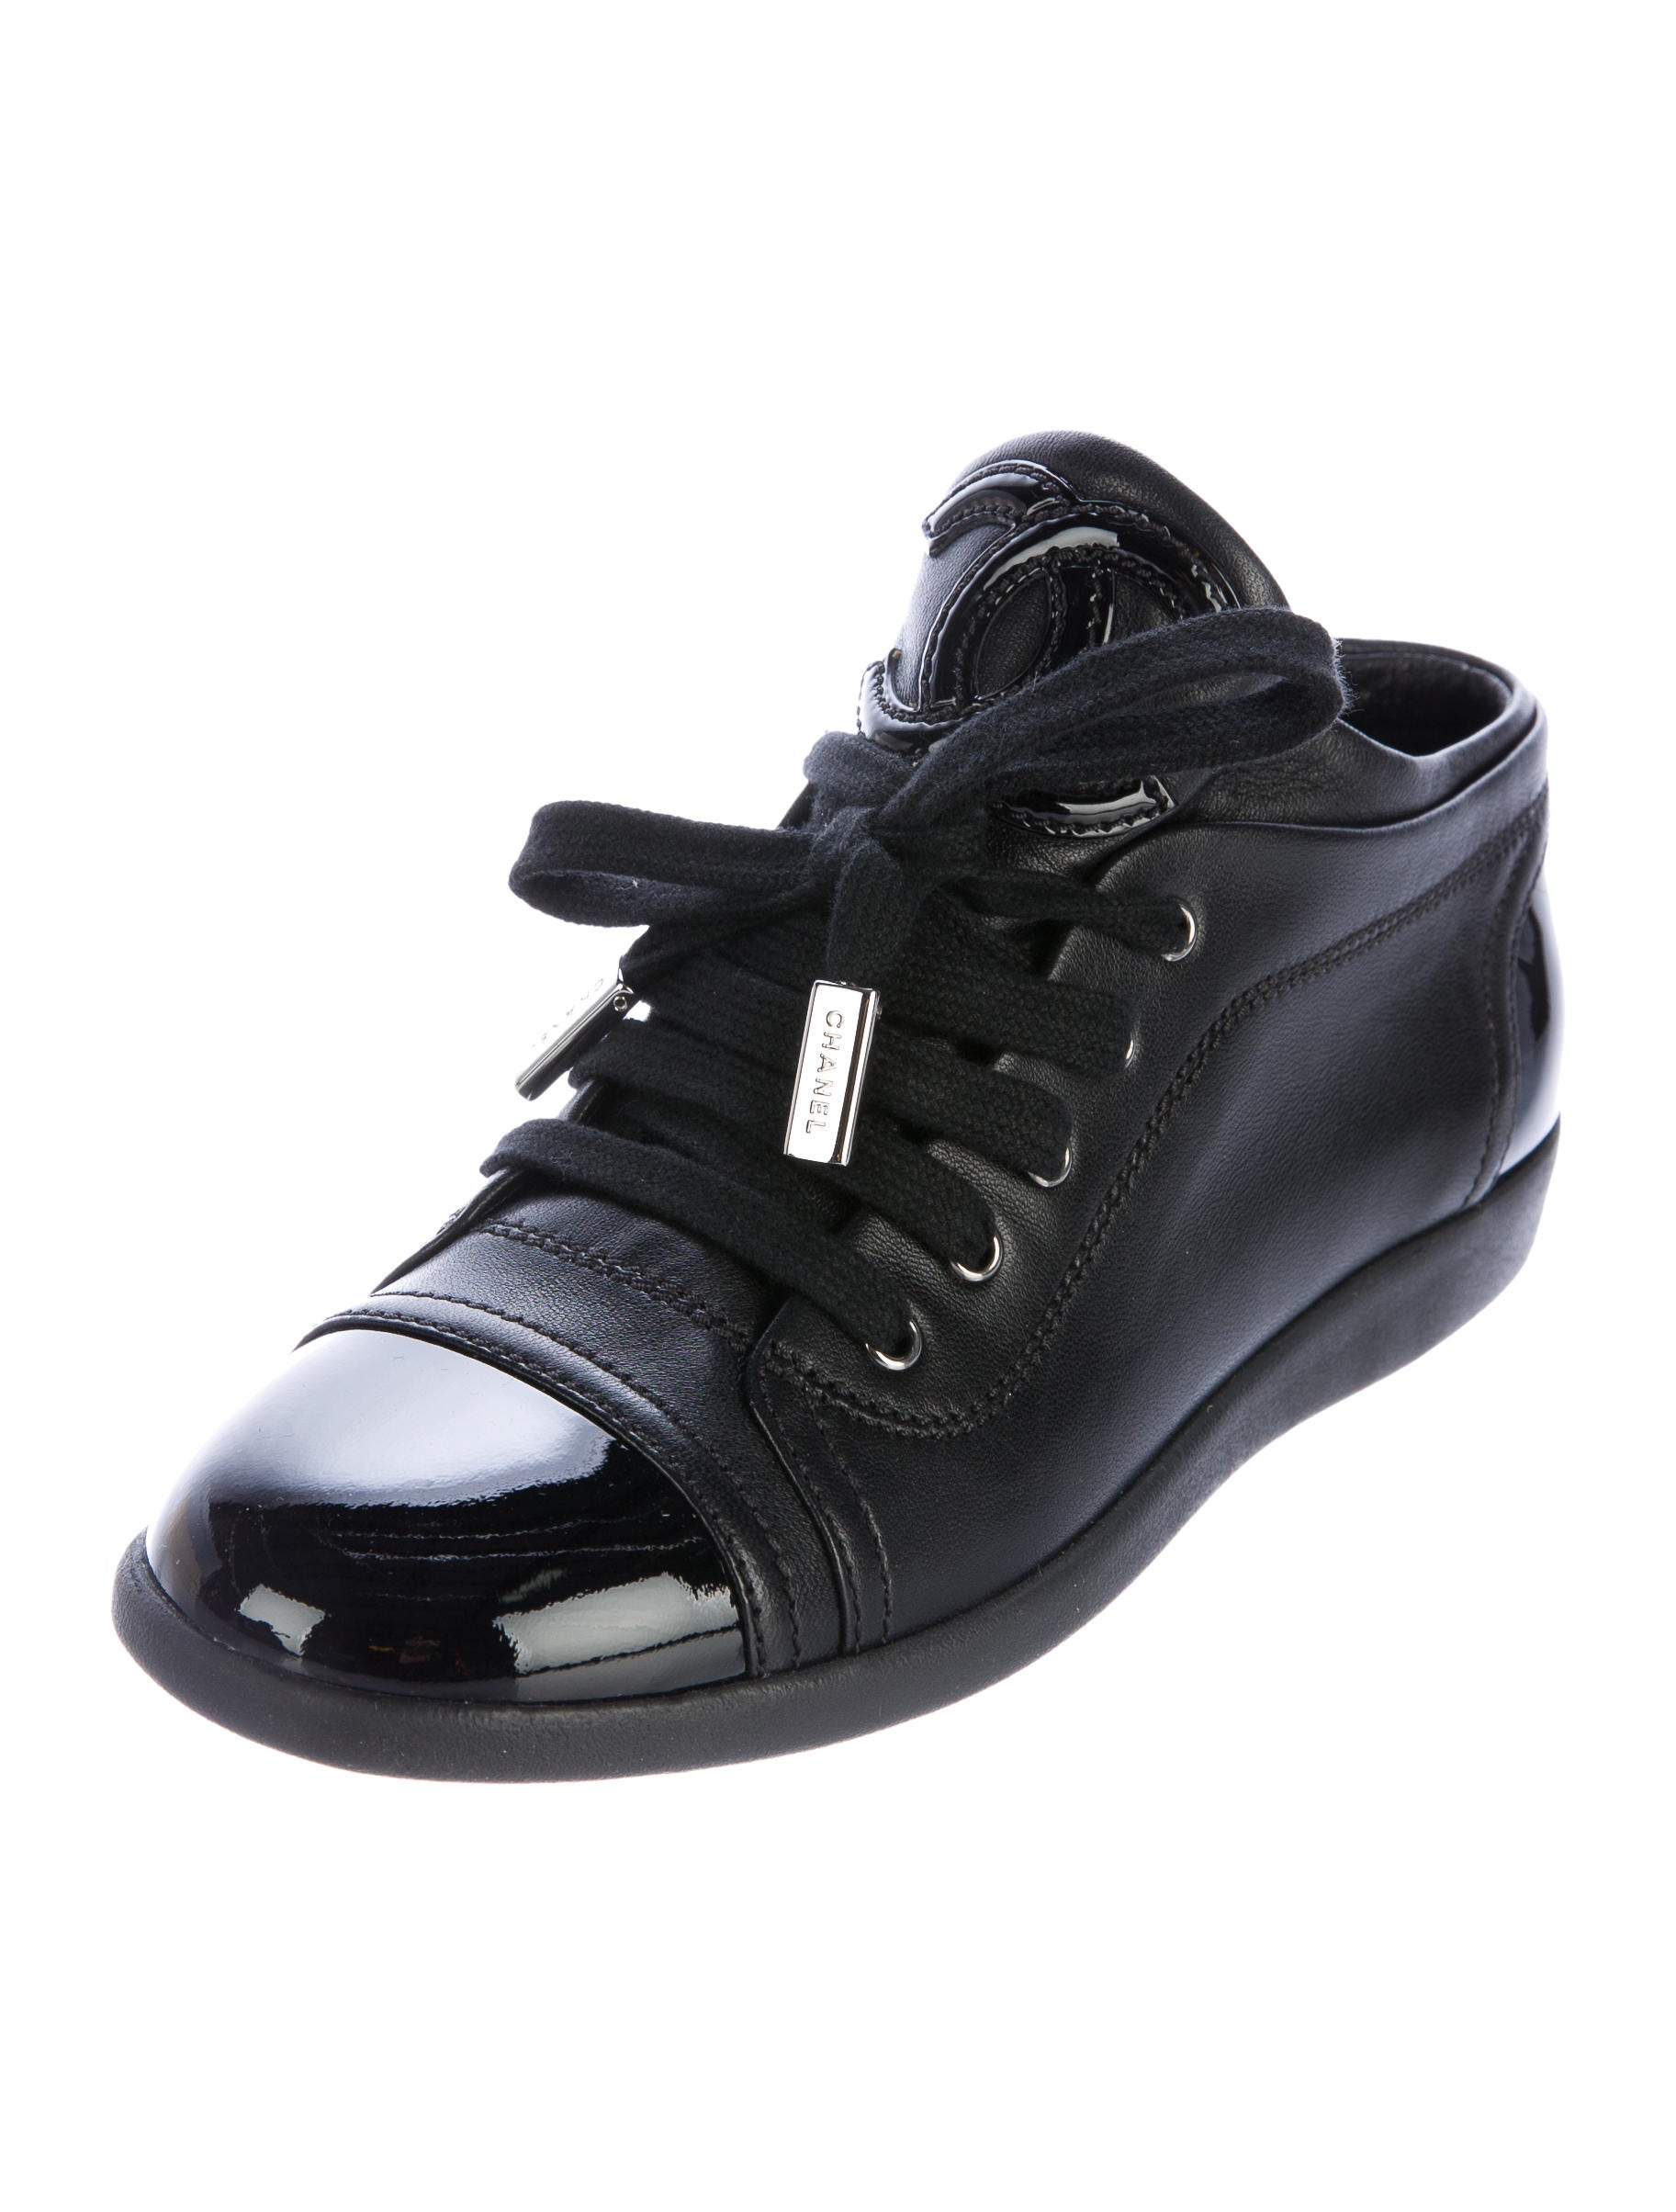 Chanel Leather Cc Sneakers Shoes Cha182538 The Realreal